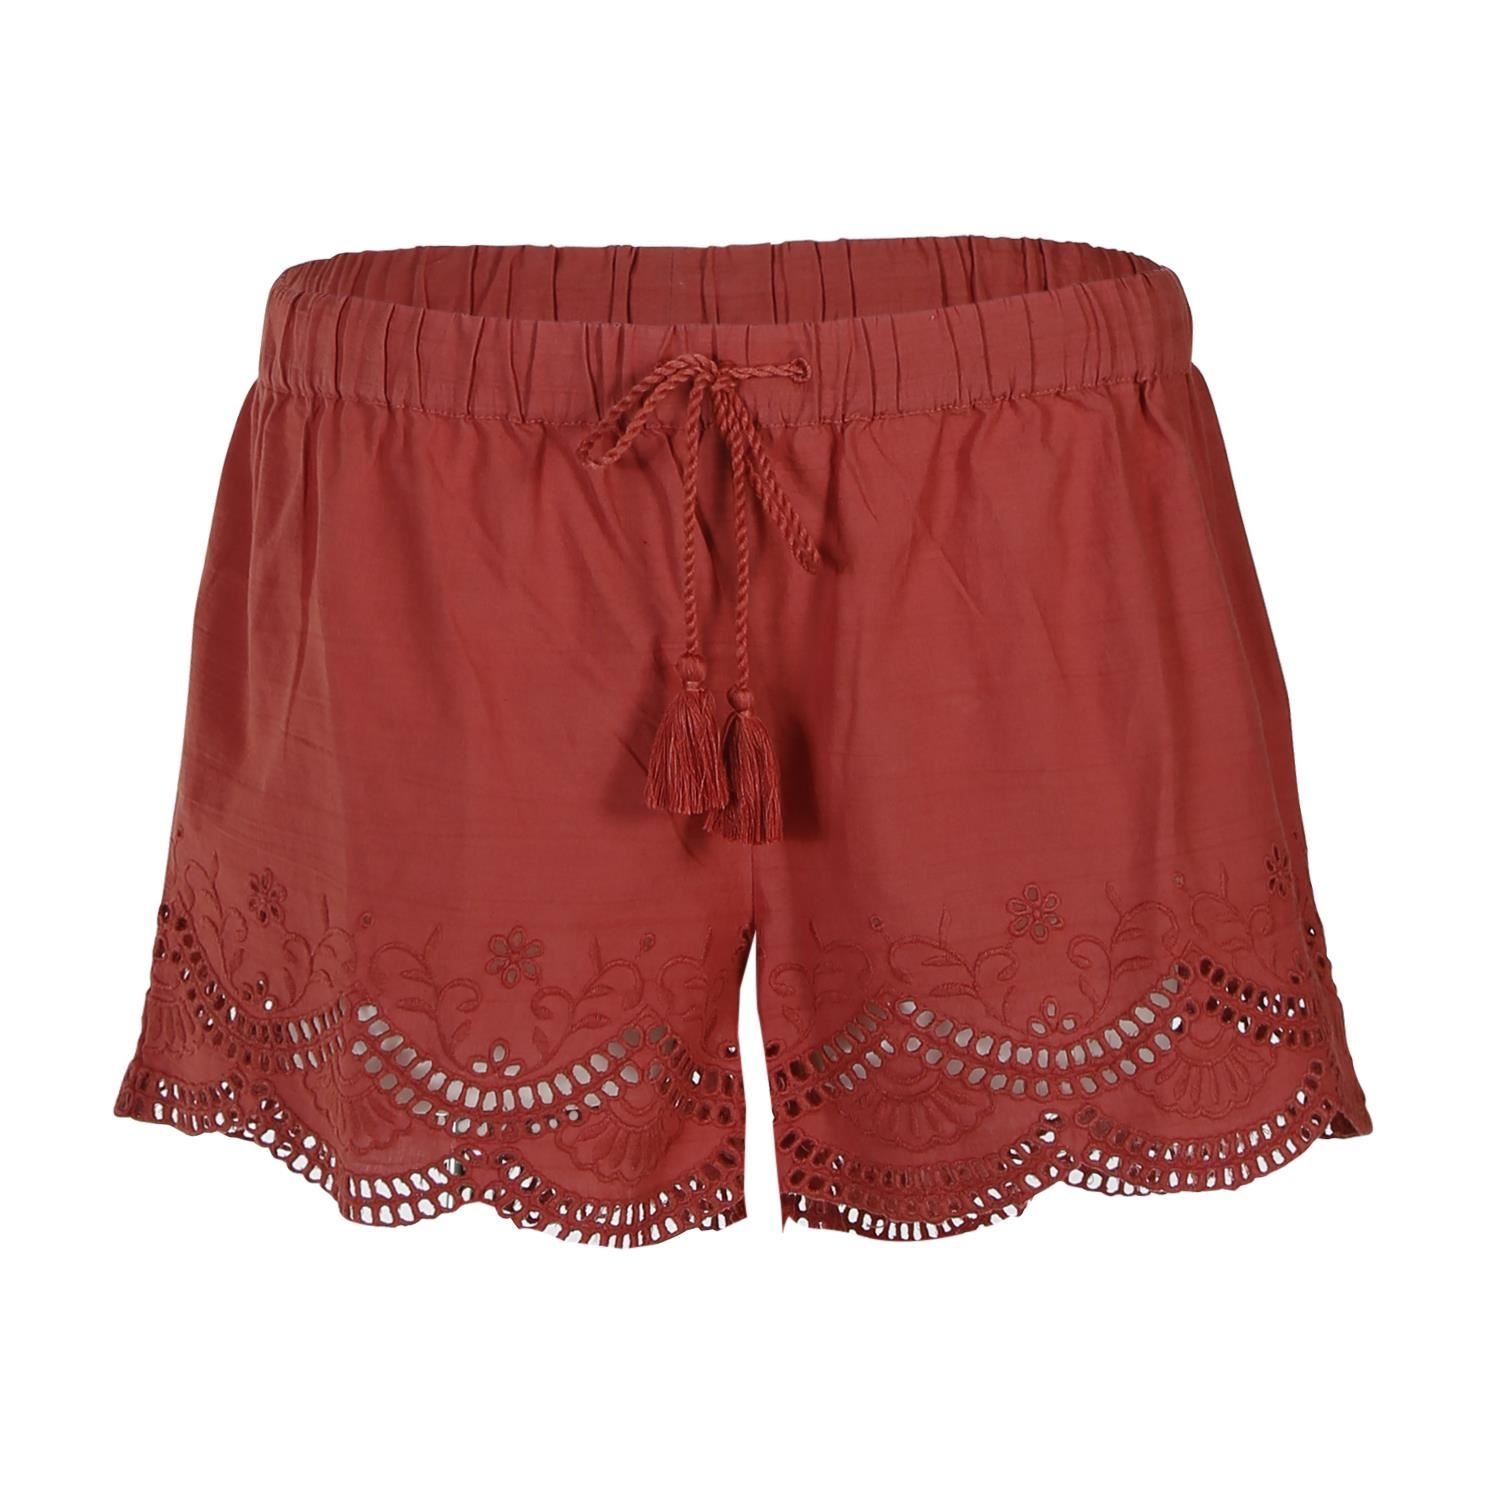 Brunotti Posey  (red) - women casual shorts - Brunotti online shop